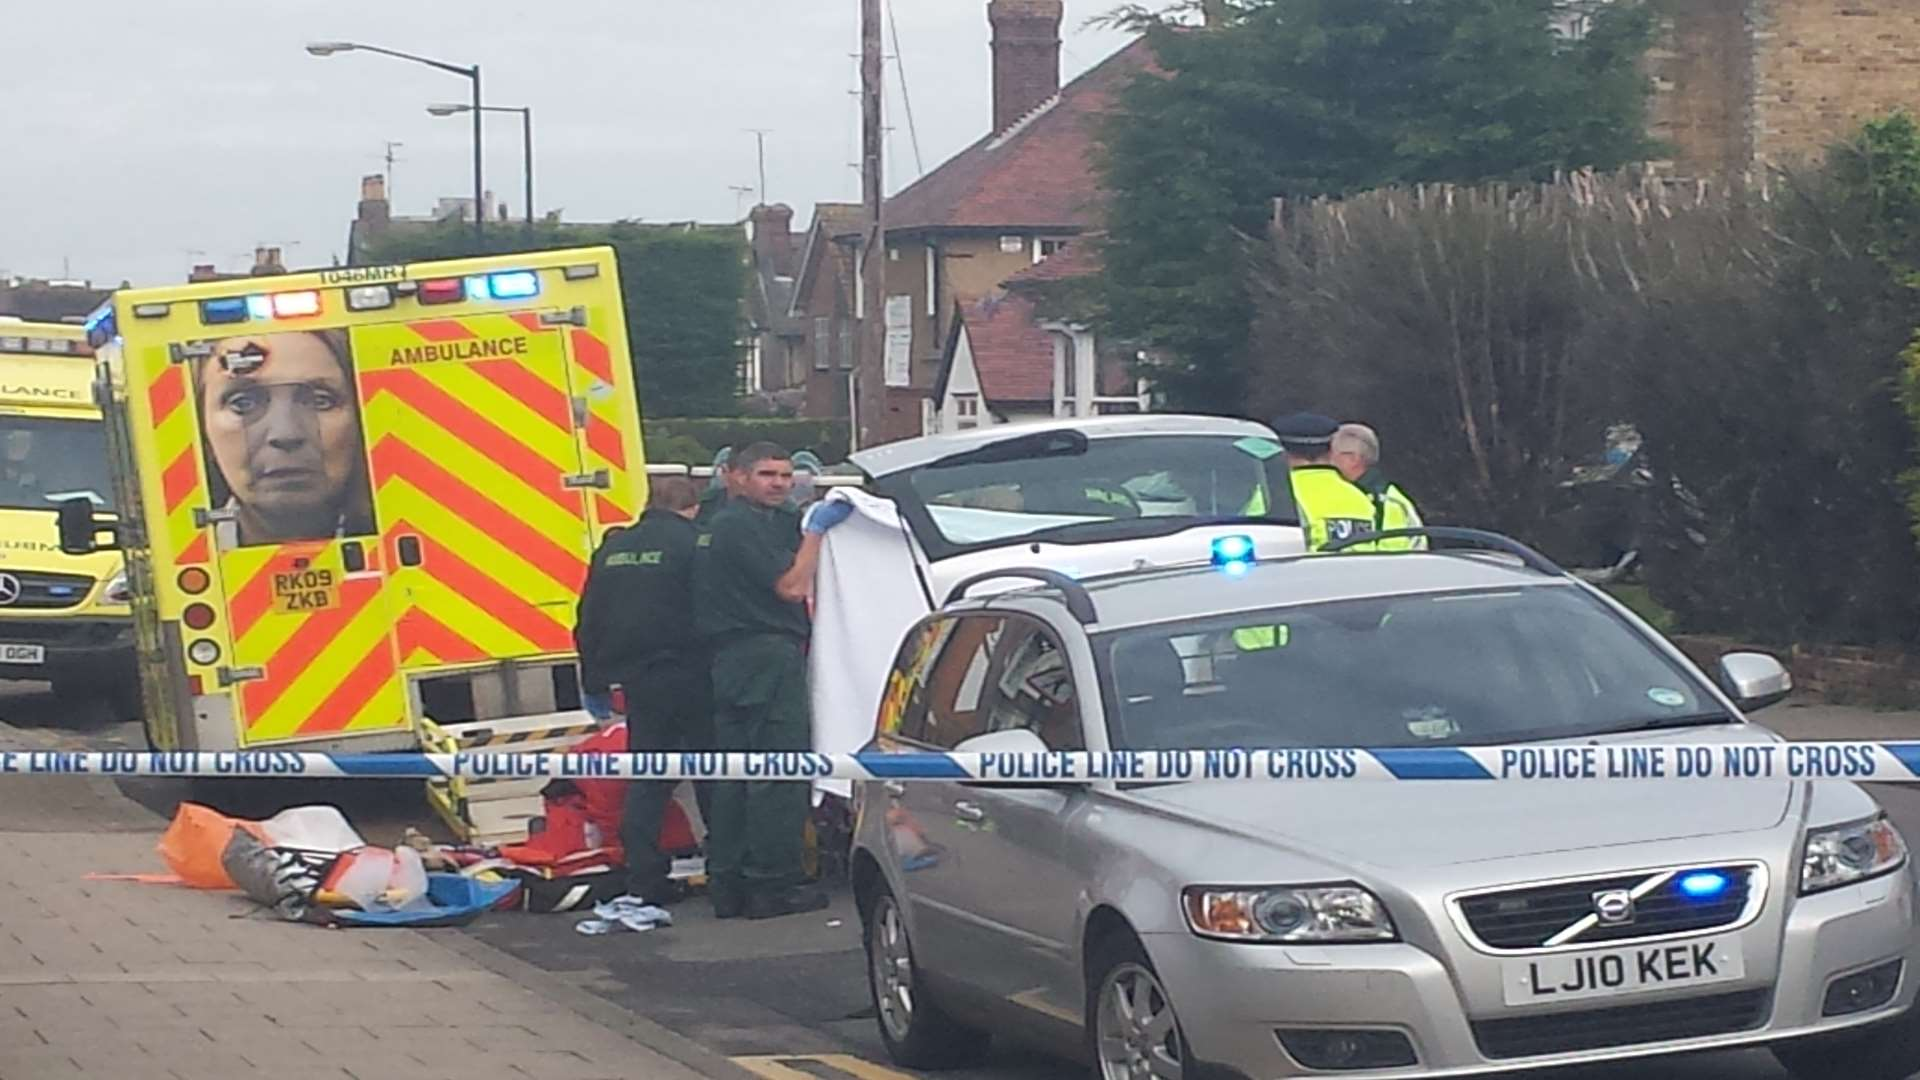 Emergency crews treat man seen on fire in Herne Bay